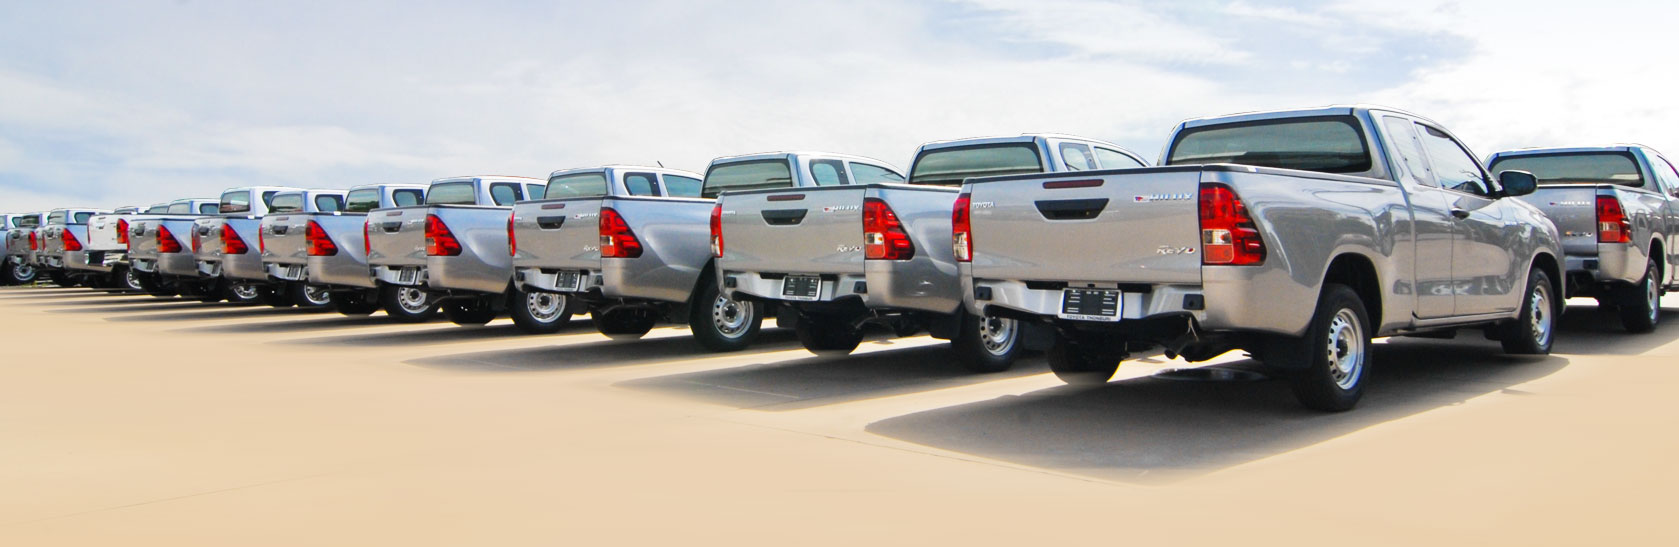 banner-hilux-revo-2015-extra-cab_03_02